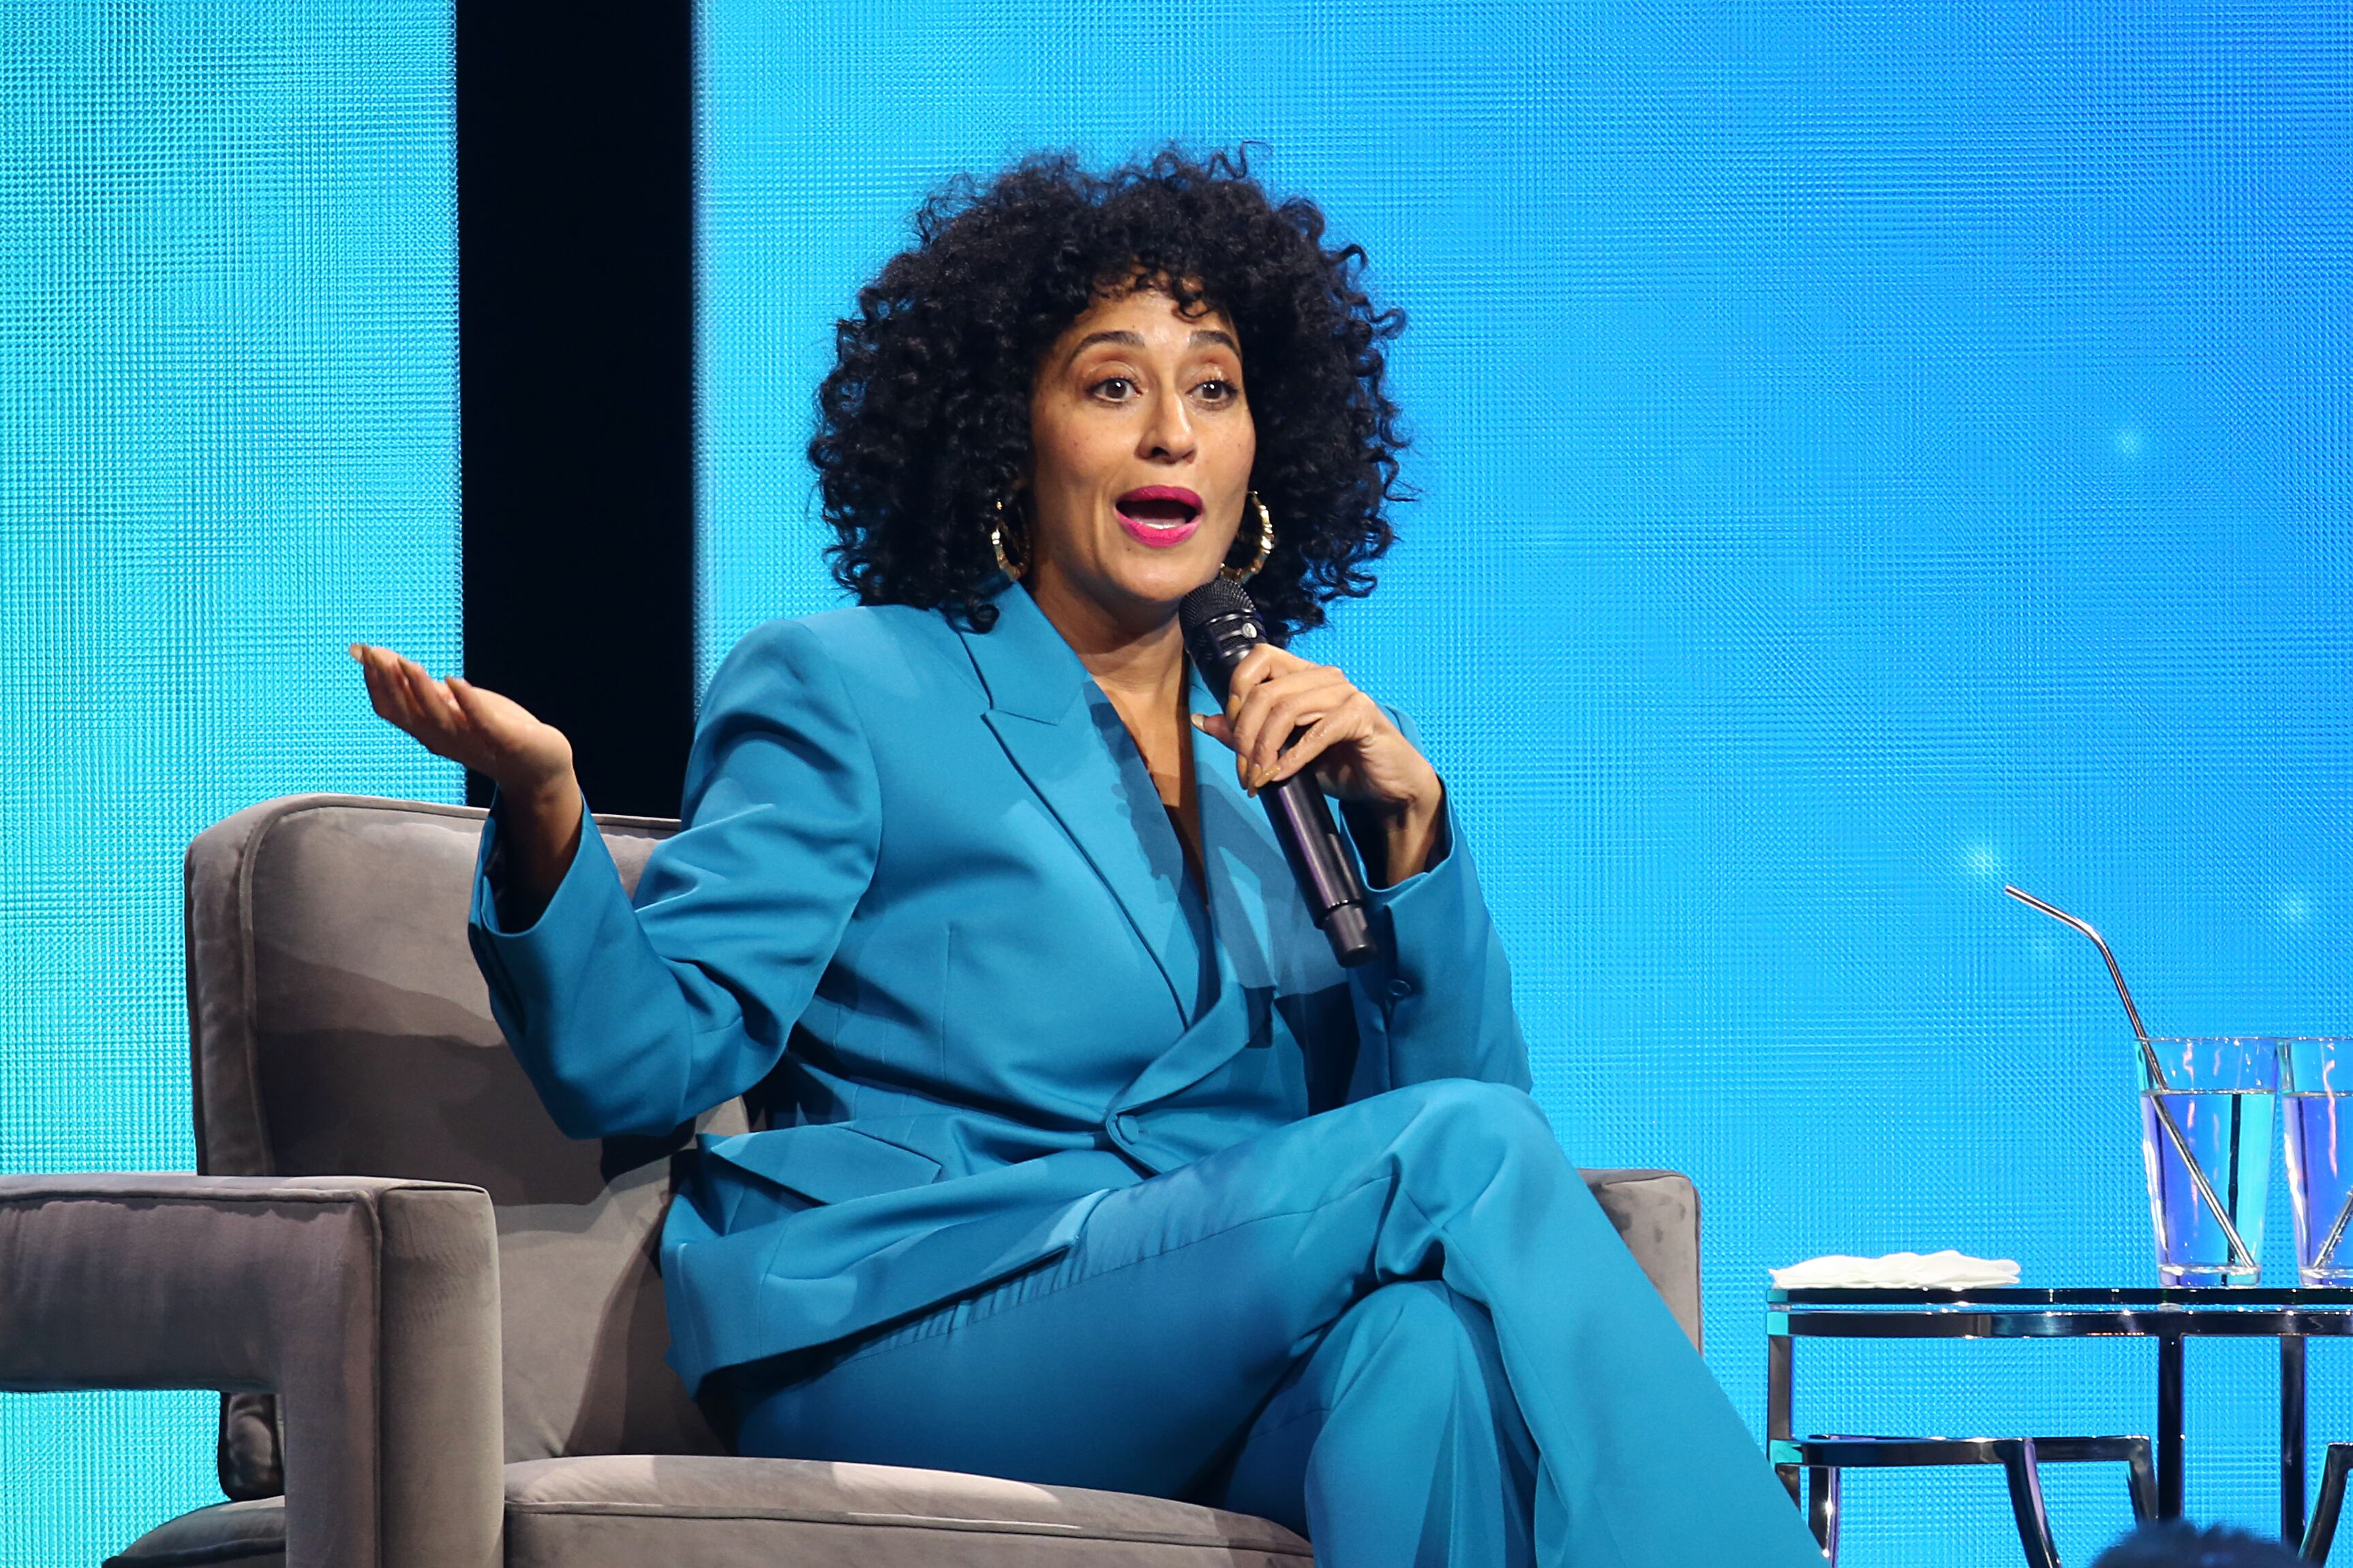 Tracee Ellis Ross at the Oprah 2020 Vision Tour at Dallas Texas | Source: Getty Images/GlobalImagsUkraine